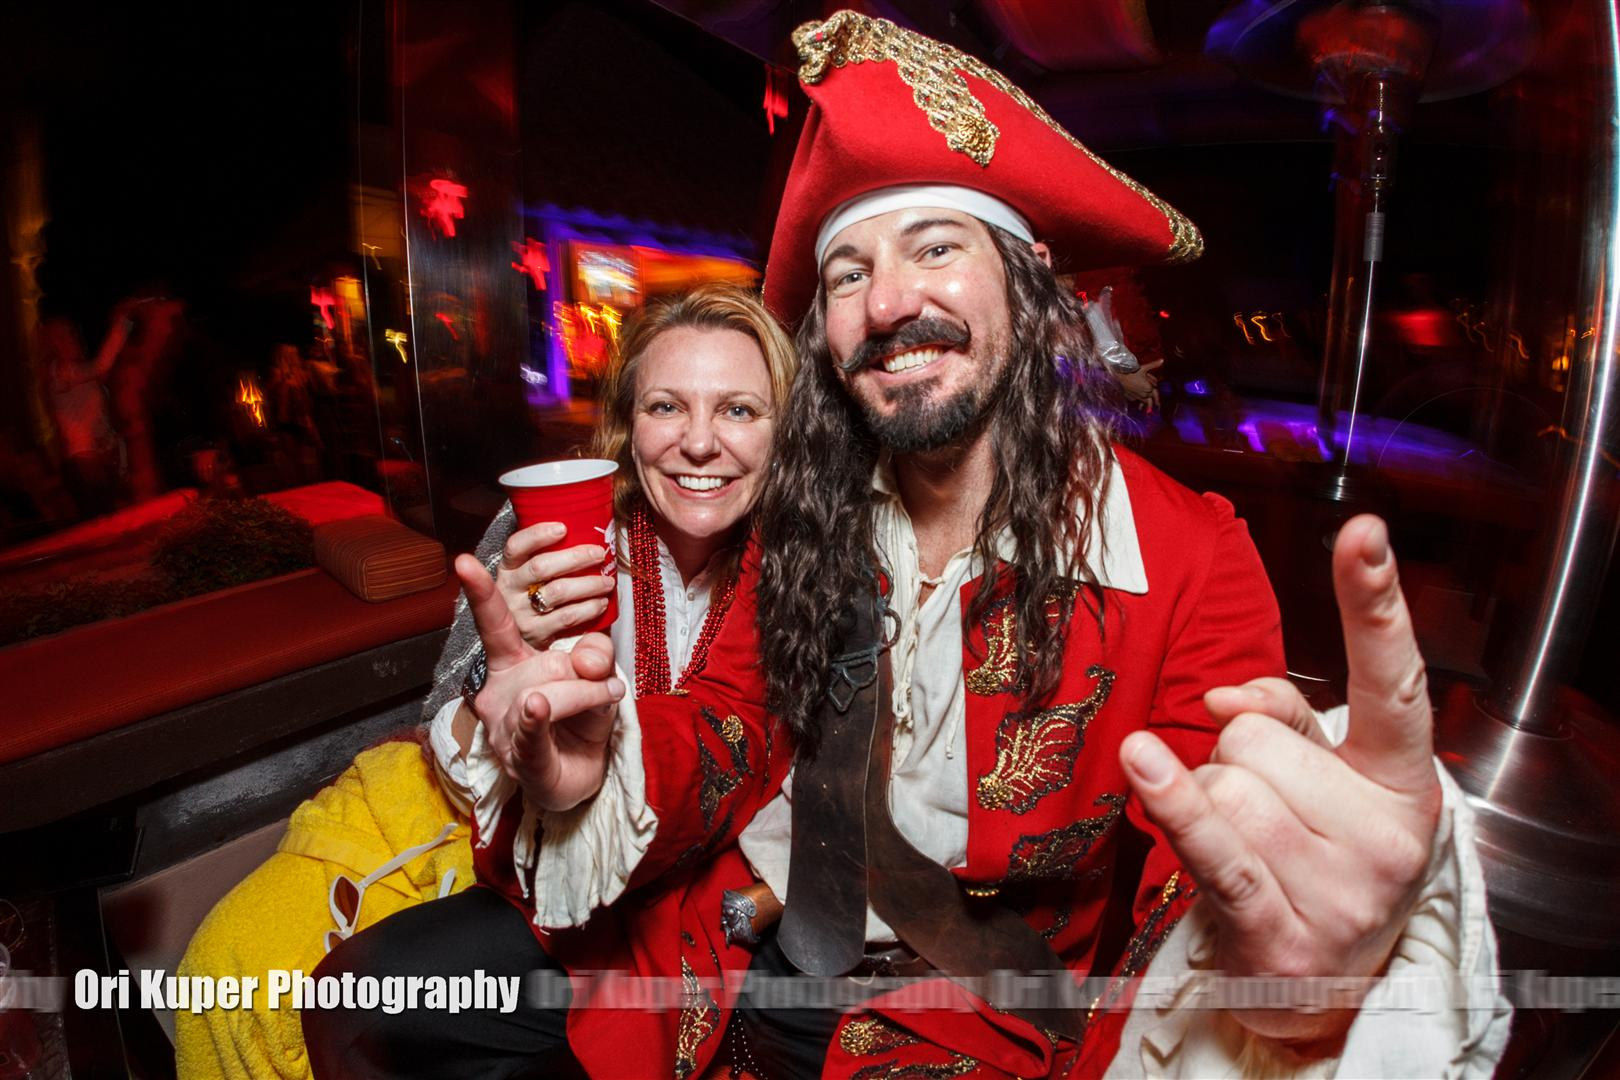 Marketing Promo Event Captain Morgan